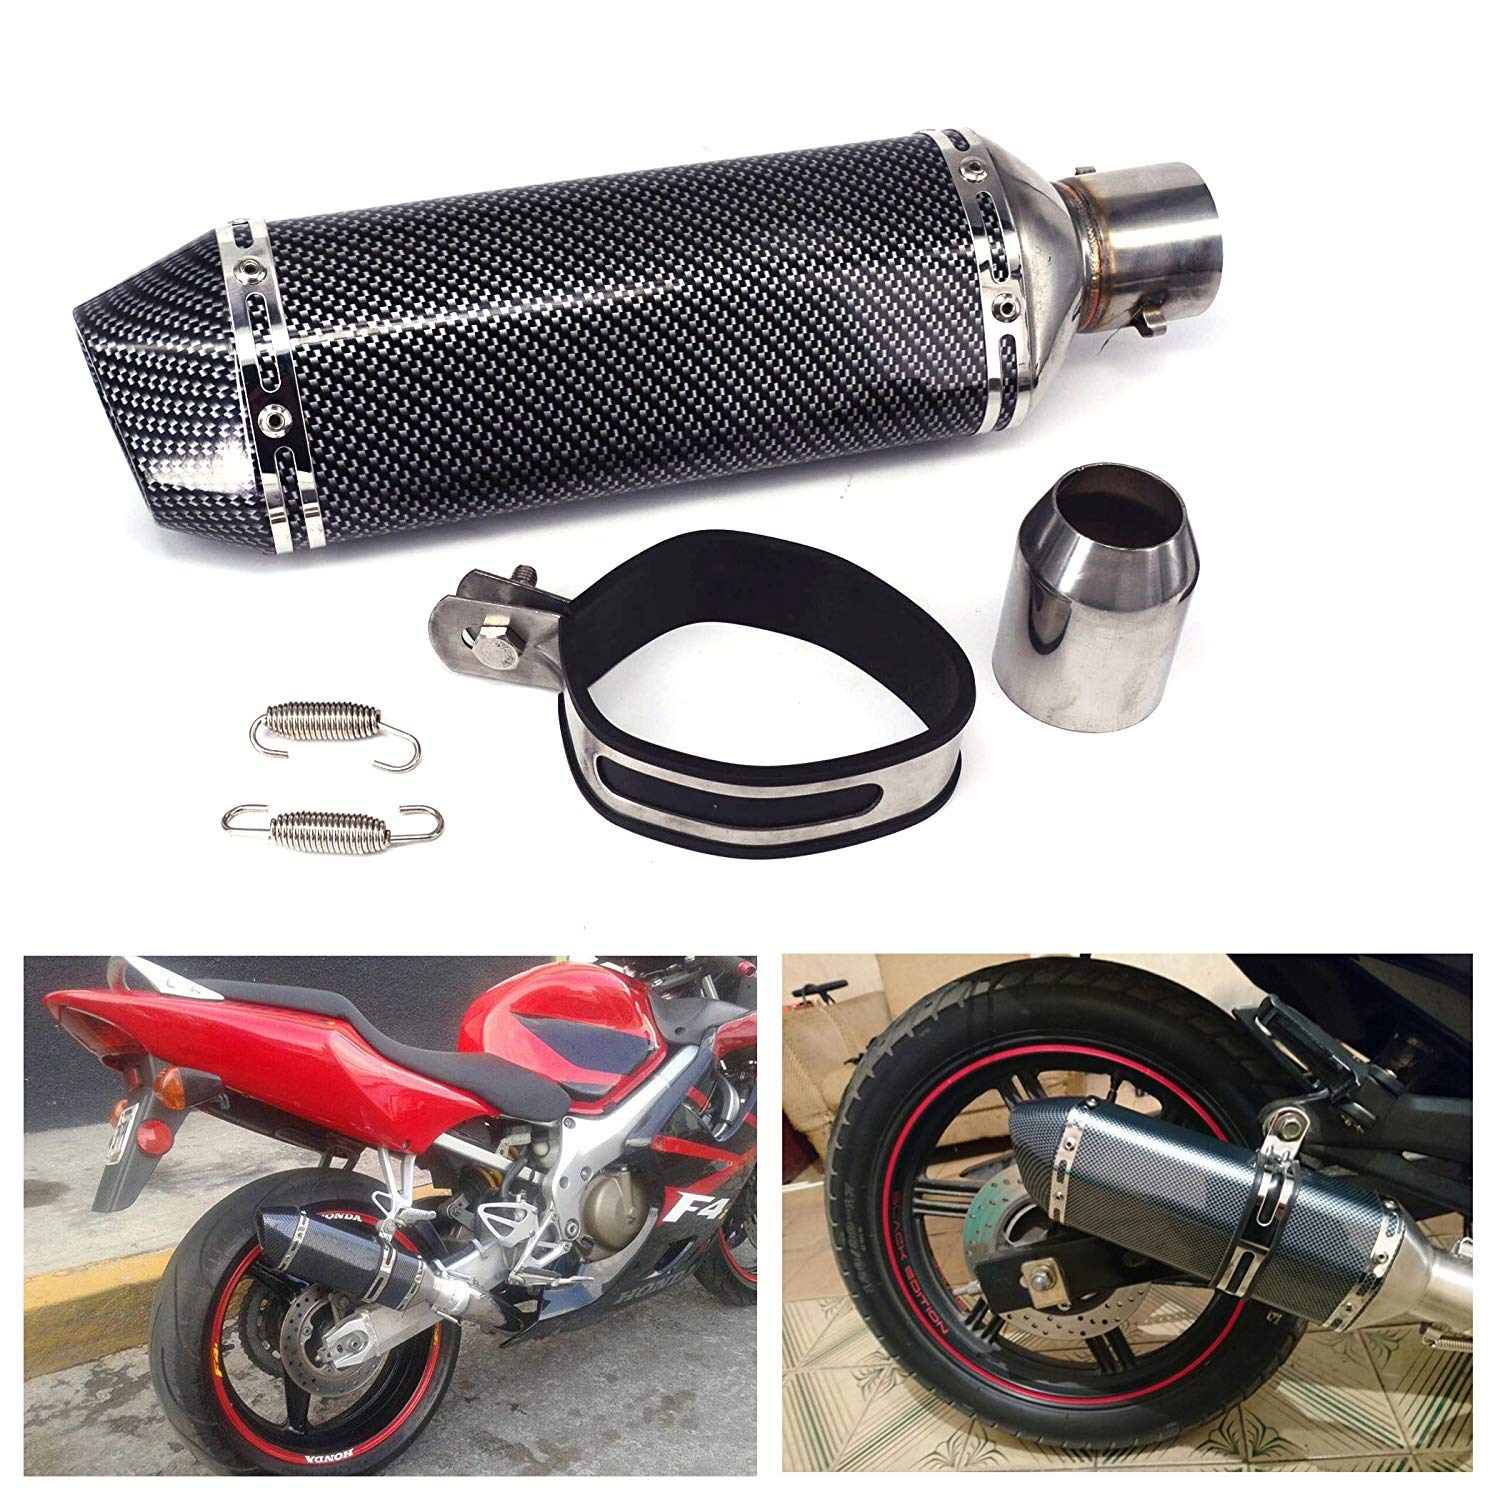 Universal Carbon Fiber Painted 1.5-2''Inlet Exhaust Muffler with Removable DB Killer for Street/Sport Motorcycles and Scooters with 38-51mm Diameter Exhaust Pipes by AnXin